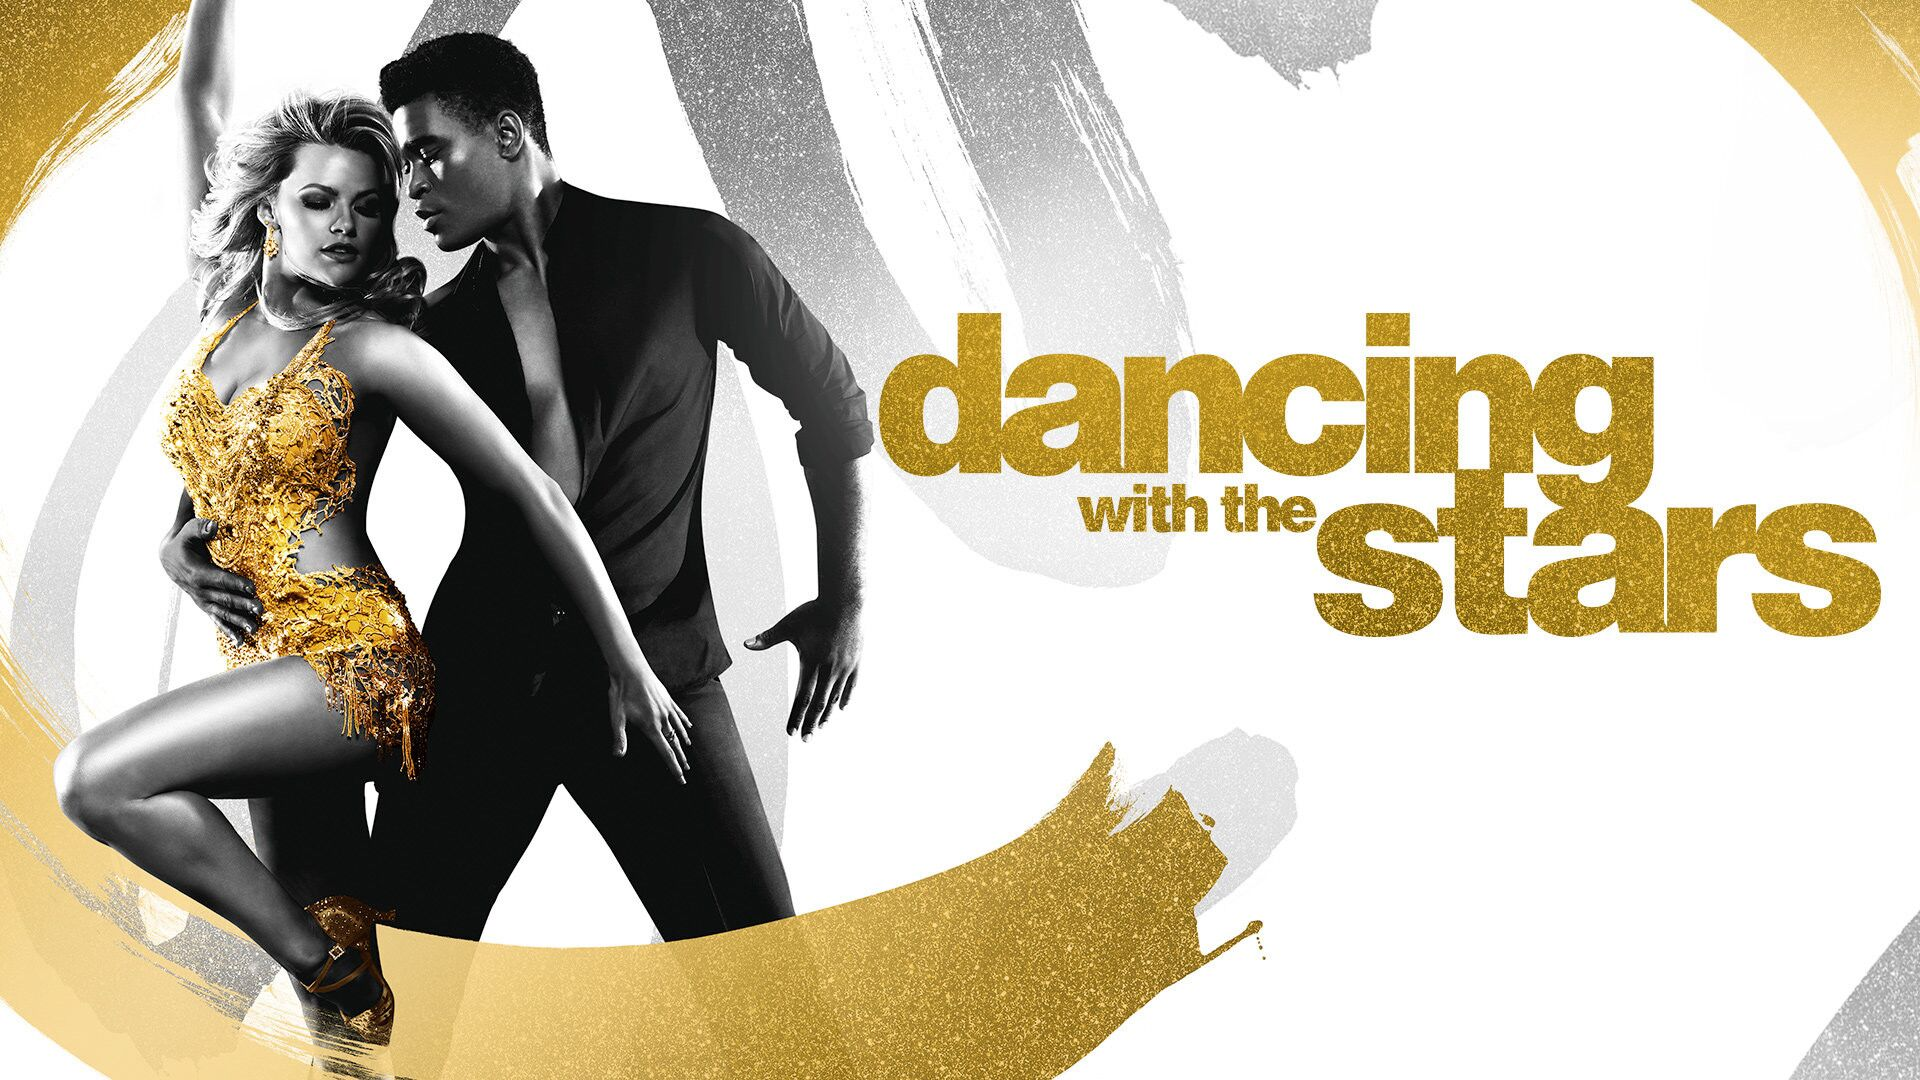 Watch the official Dancing with the Stars online at ABCcom Get exclusive videos blogs photos cast bios free episodes